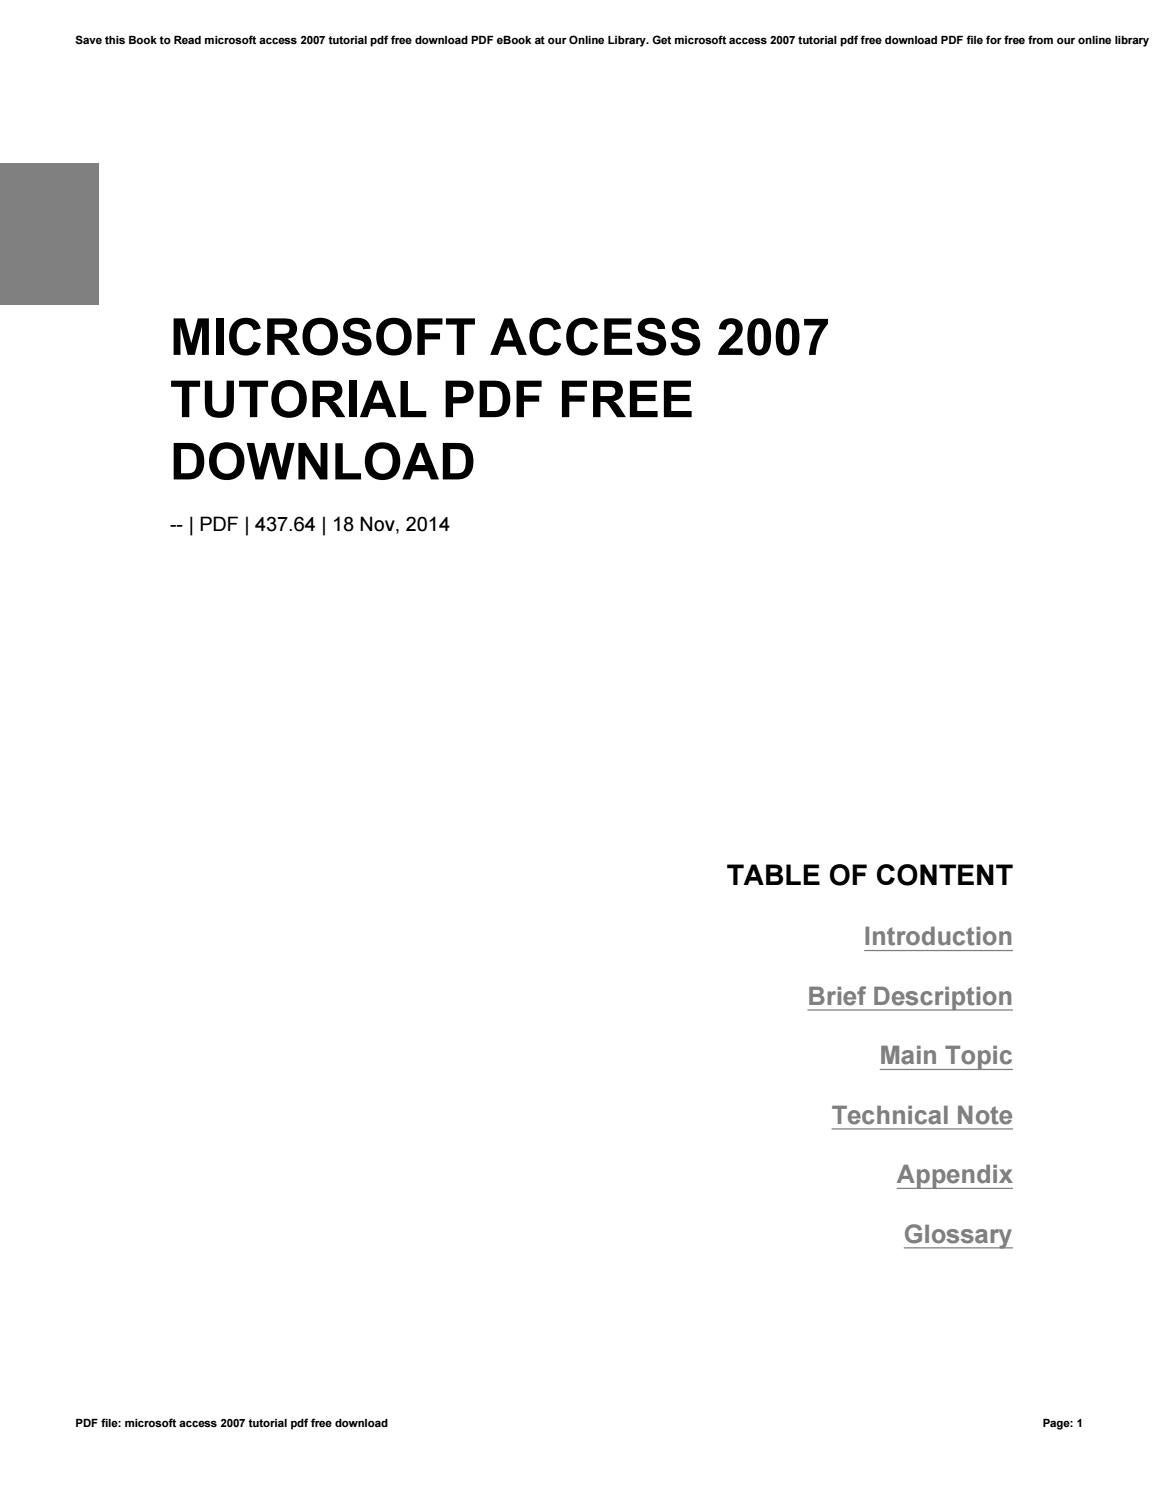 Microsoft access 2007 tutorial pdf free download by mdhc54 issuu fandeluxe